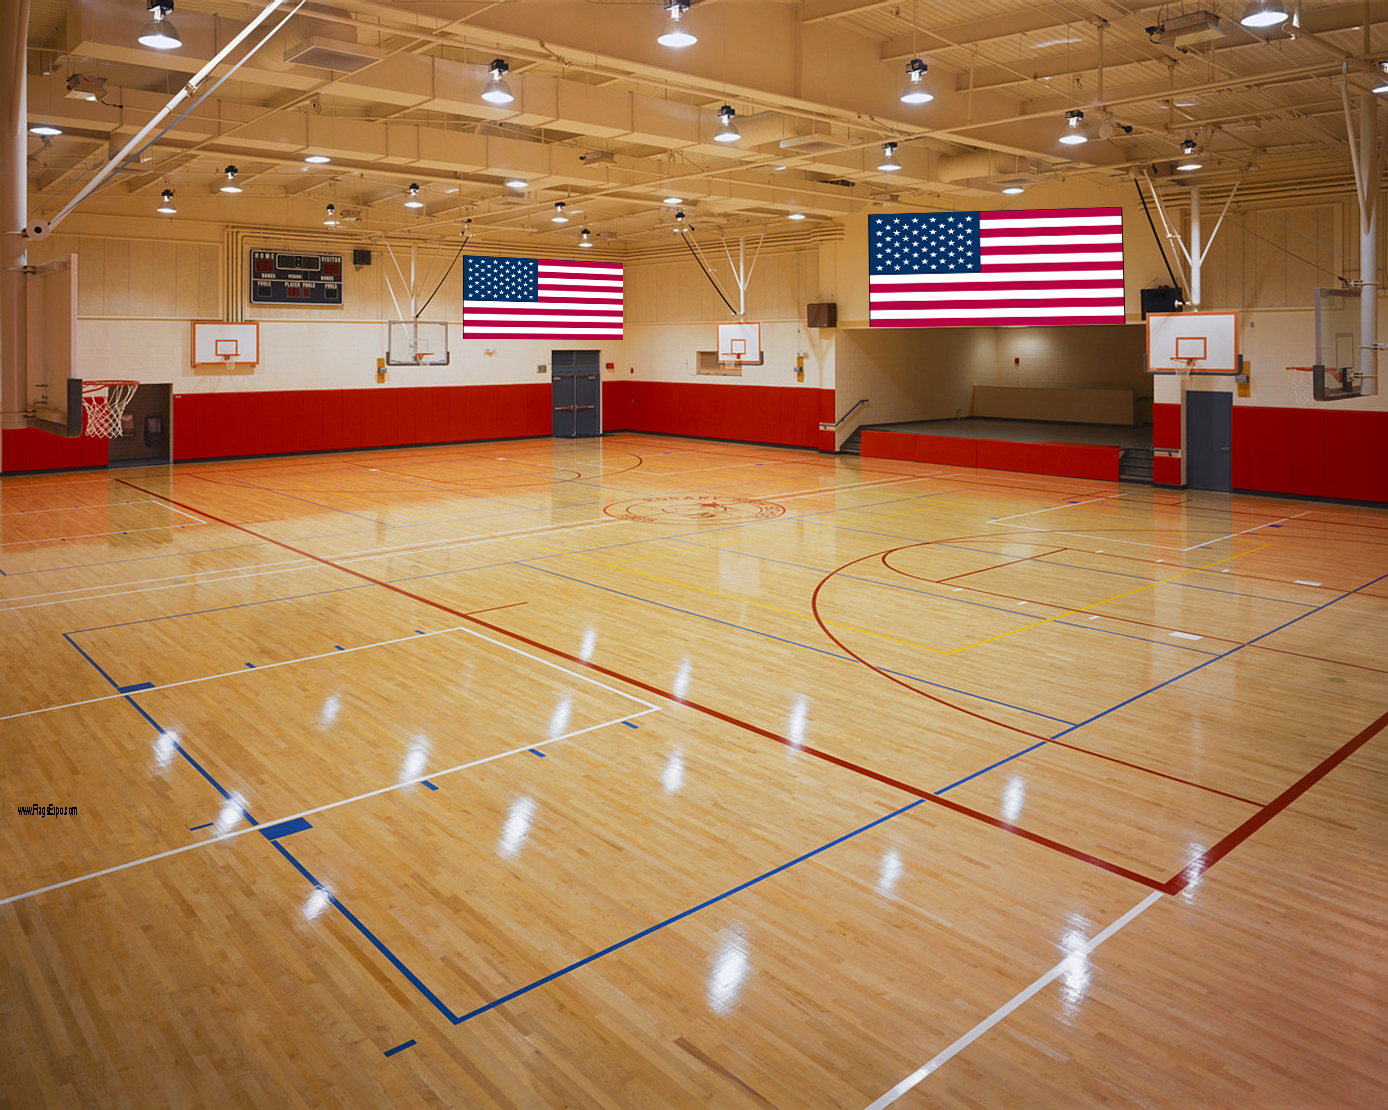 Gym and Auditorium Flags